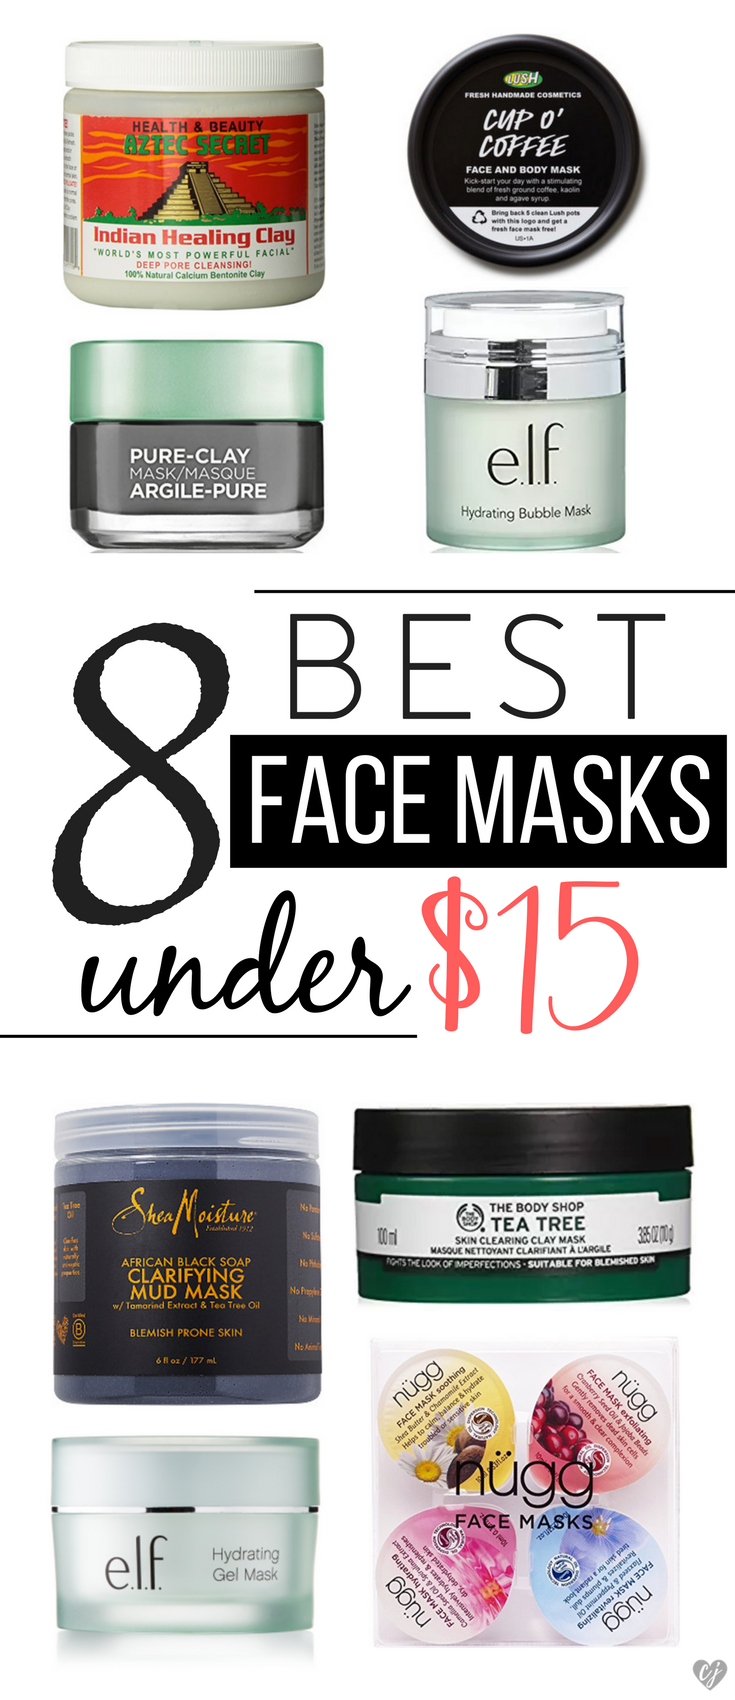 8 Best Face Masks Under $15